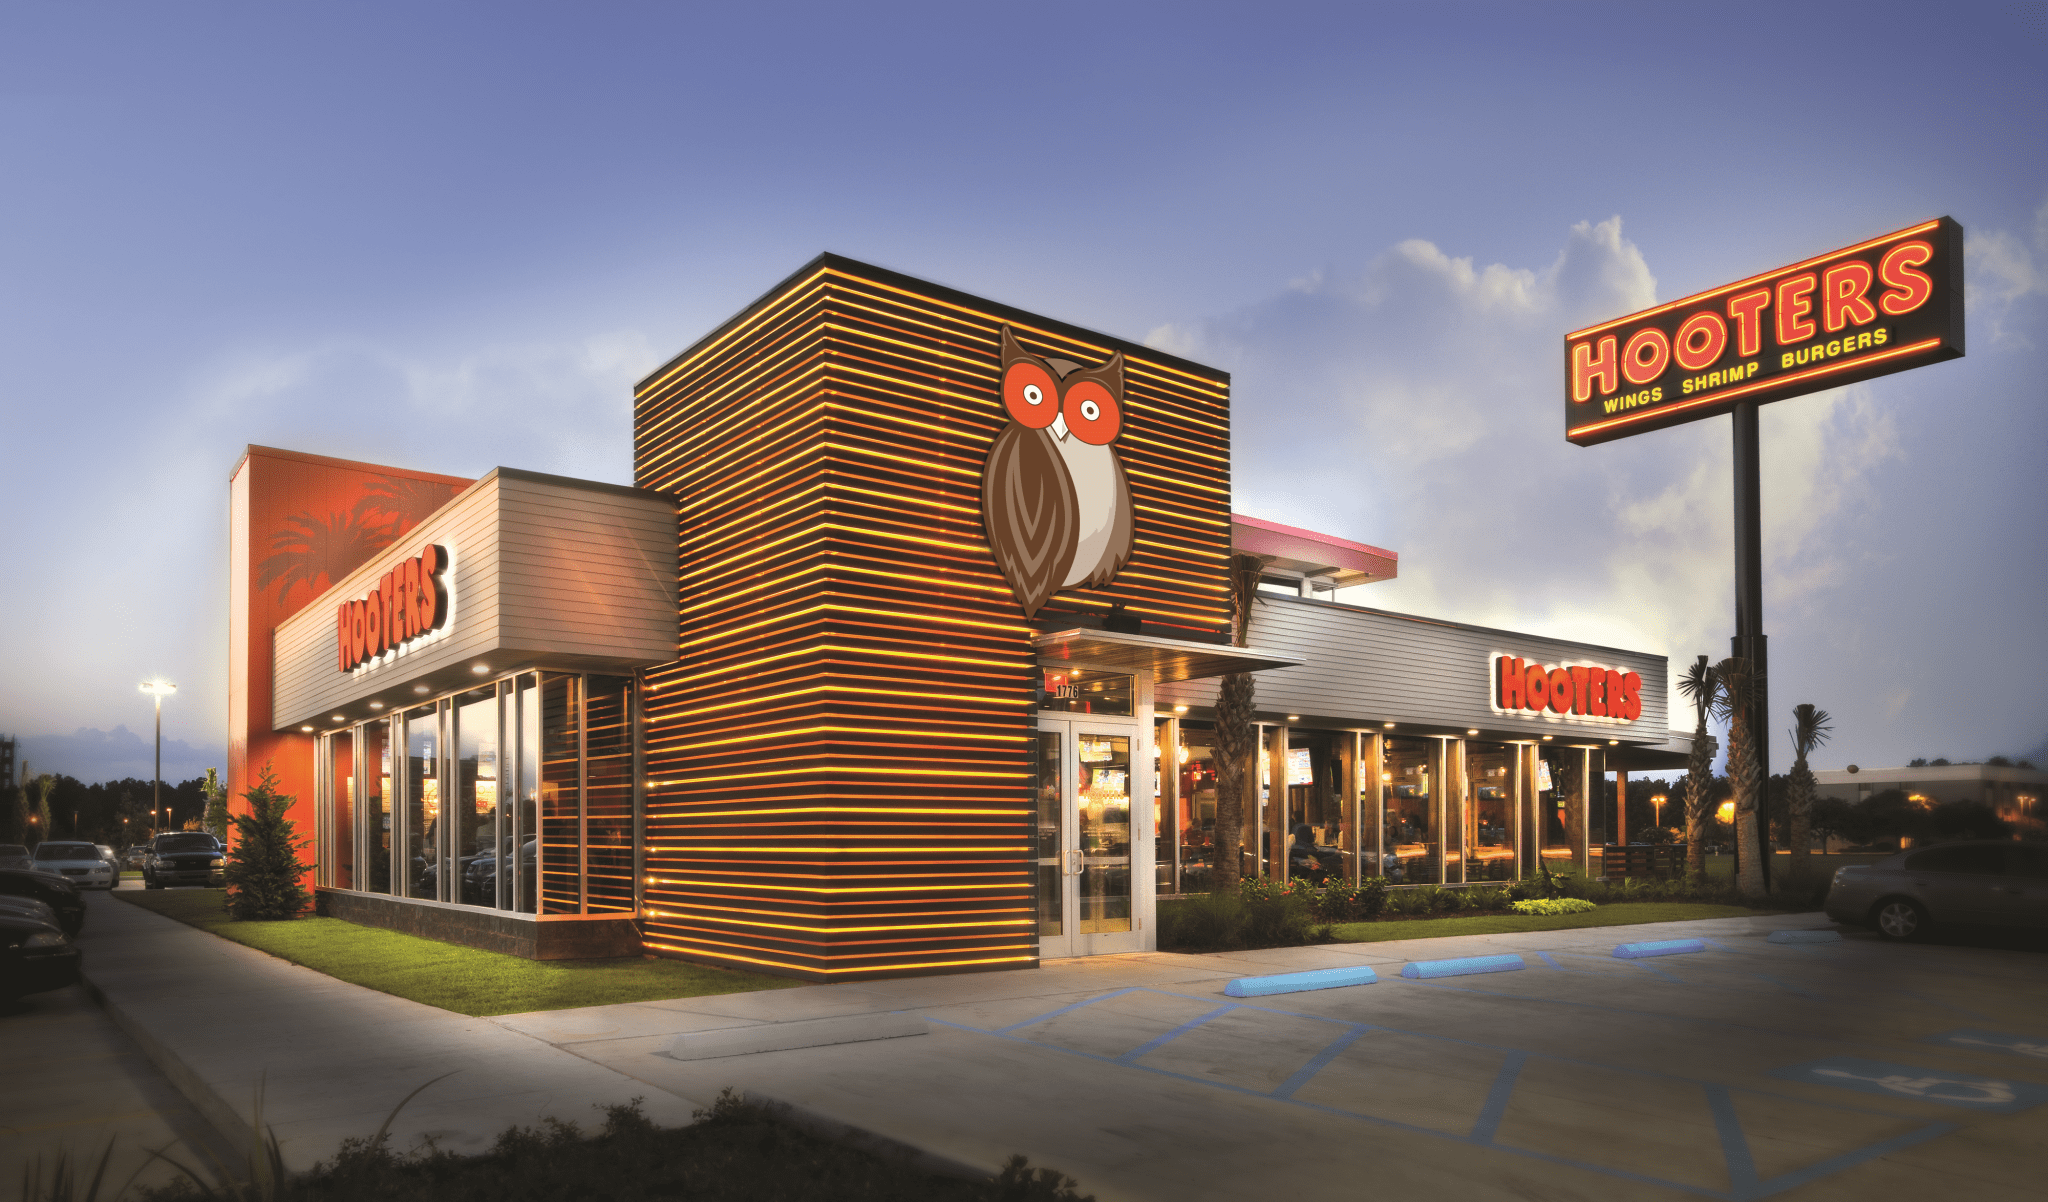 Hooters Opens First Bolivia Location In Santa Cruz Hooters